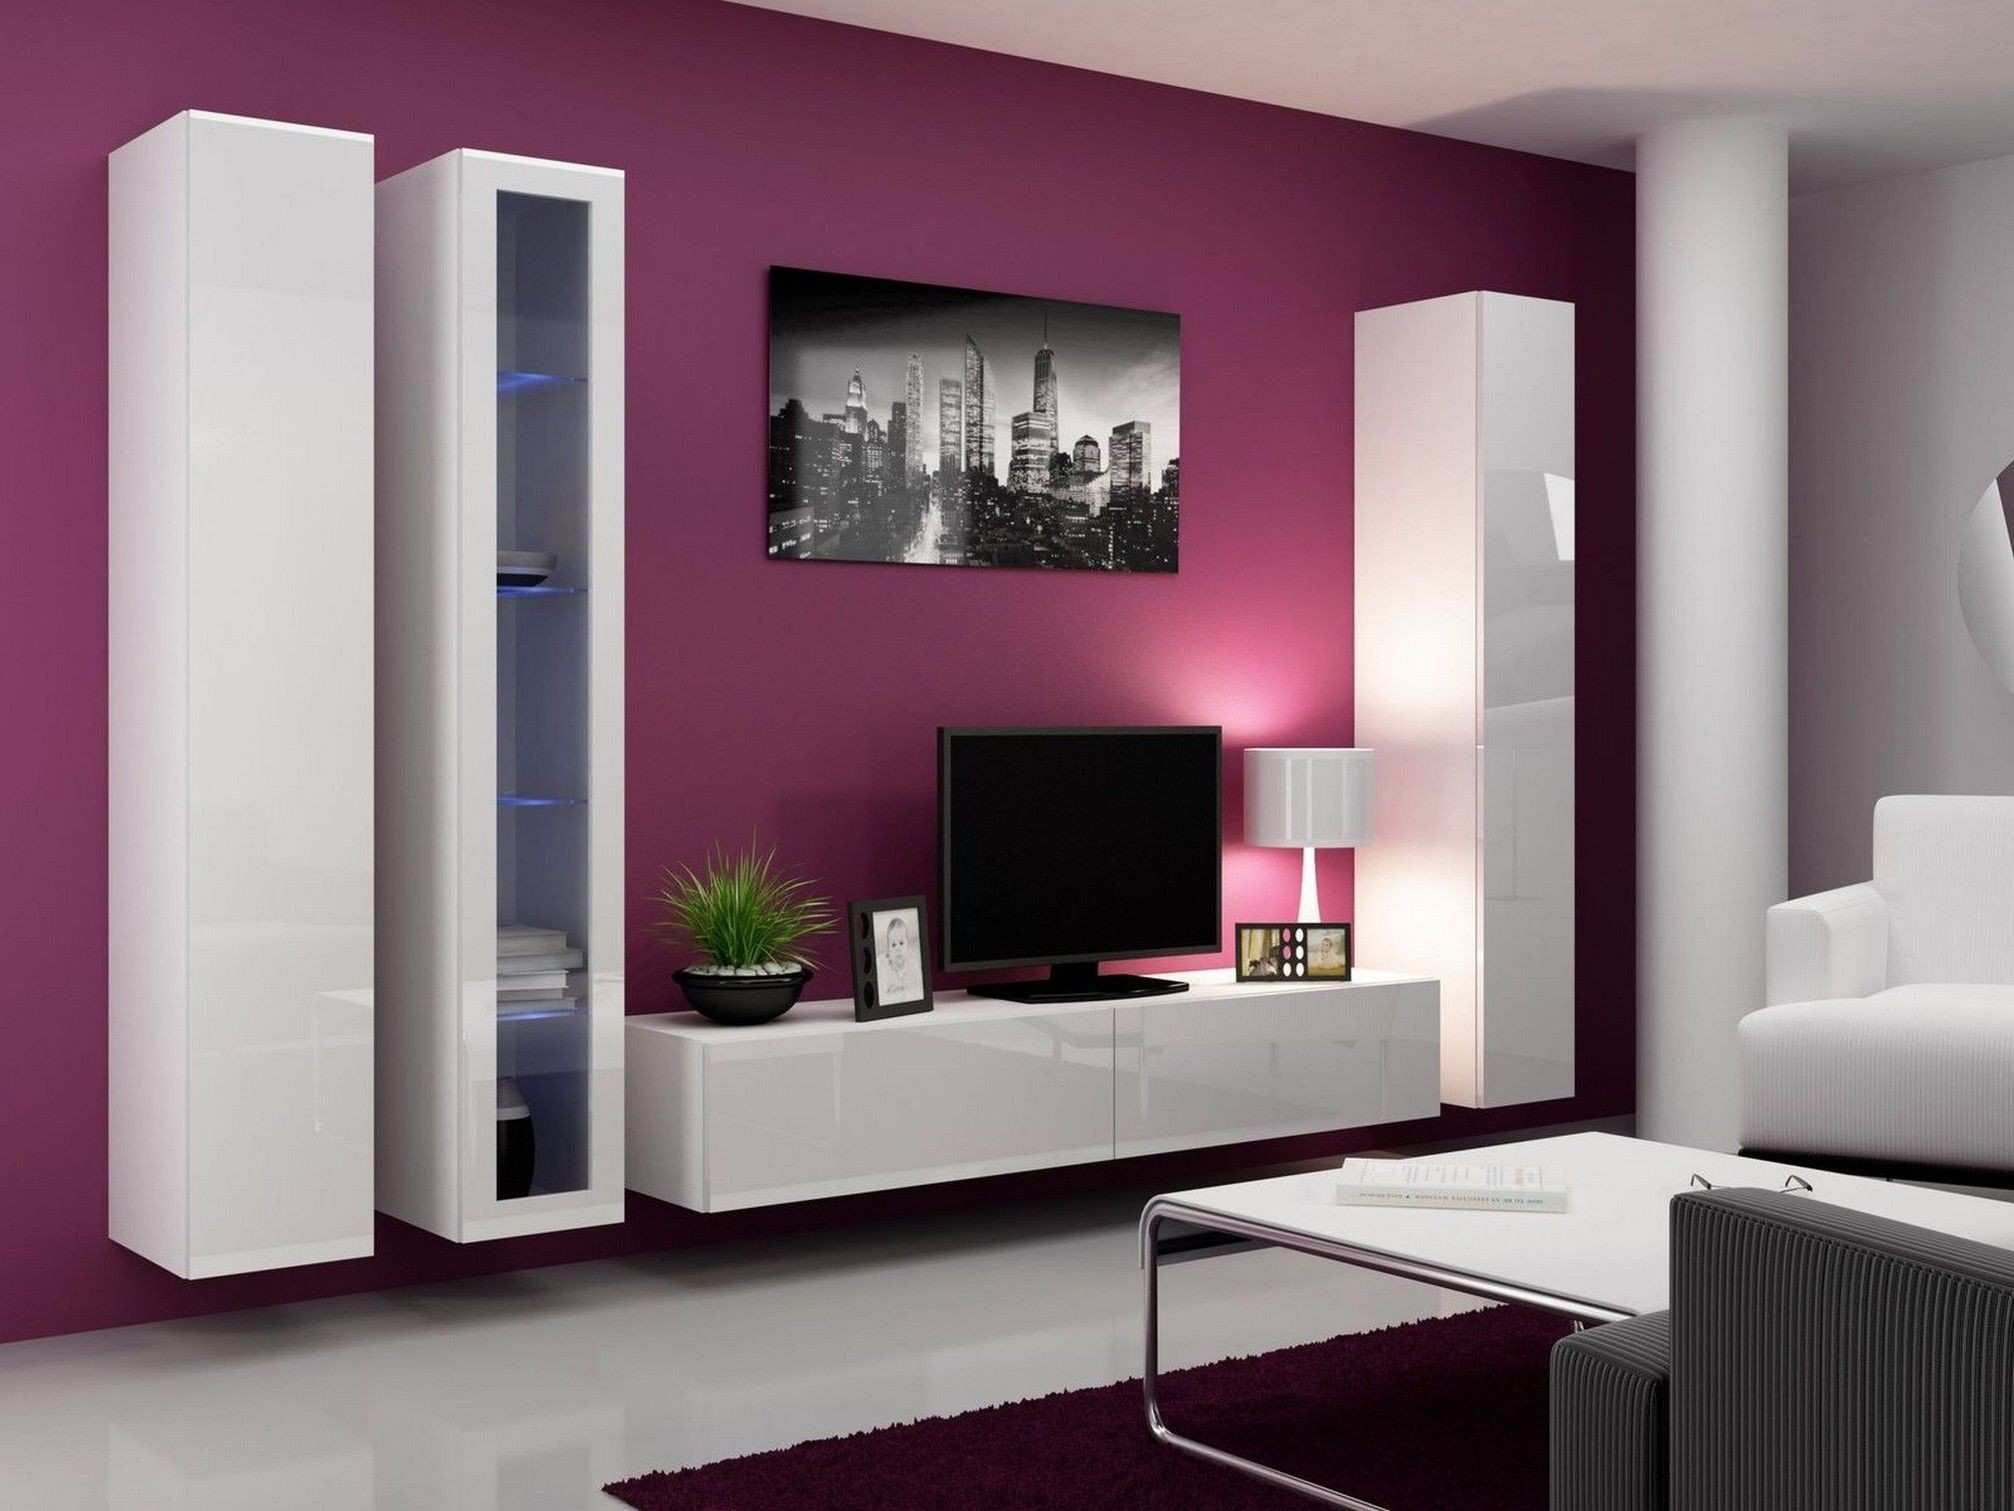 Wall Mounted Tv Unit Furniture Pink Color Schemes Ideas for Design